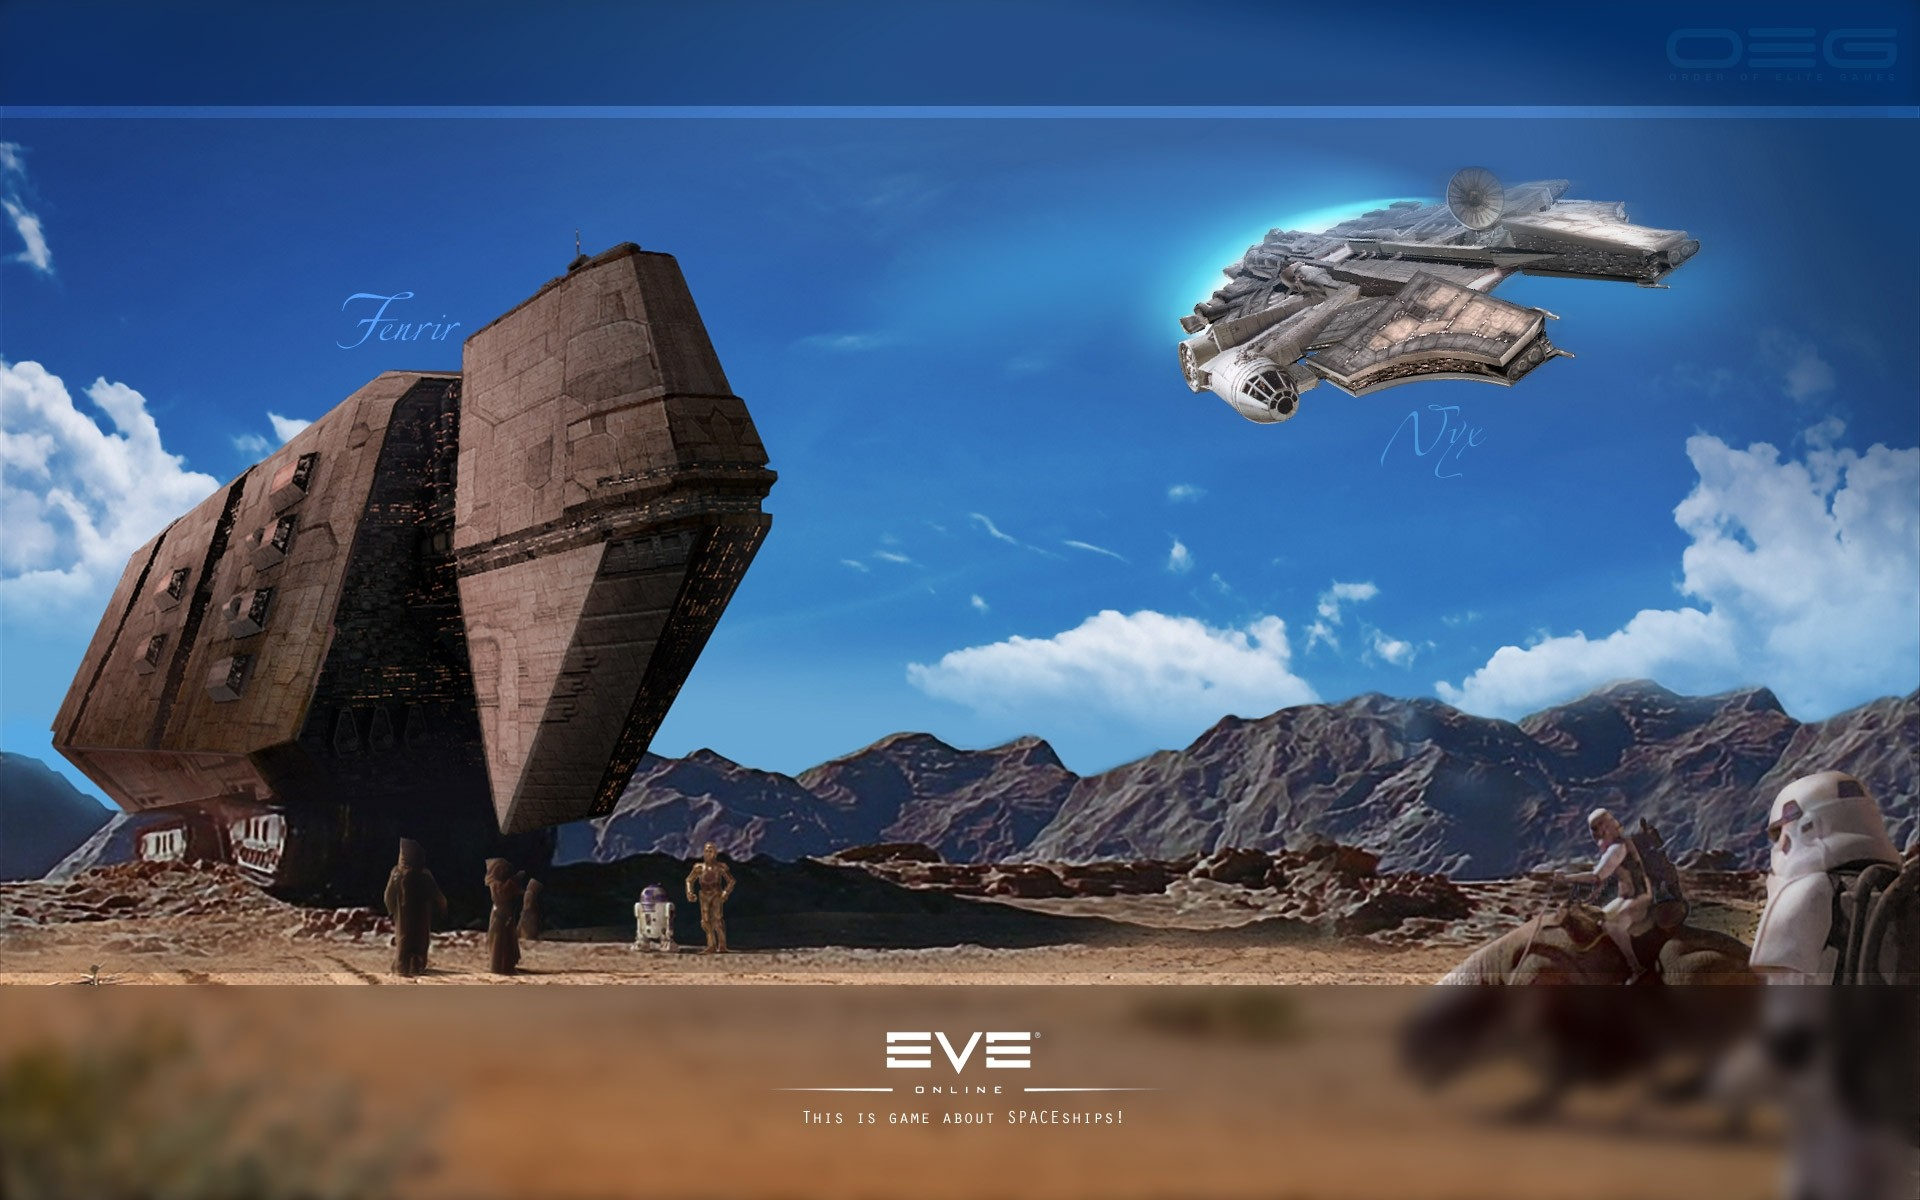 Googled Eve Online Backgrounds, was not dissapointed …